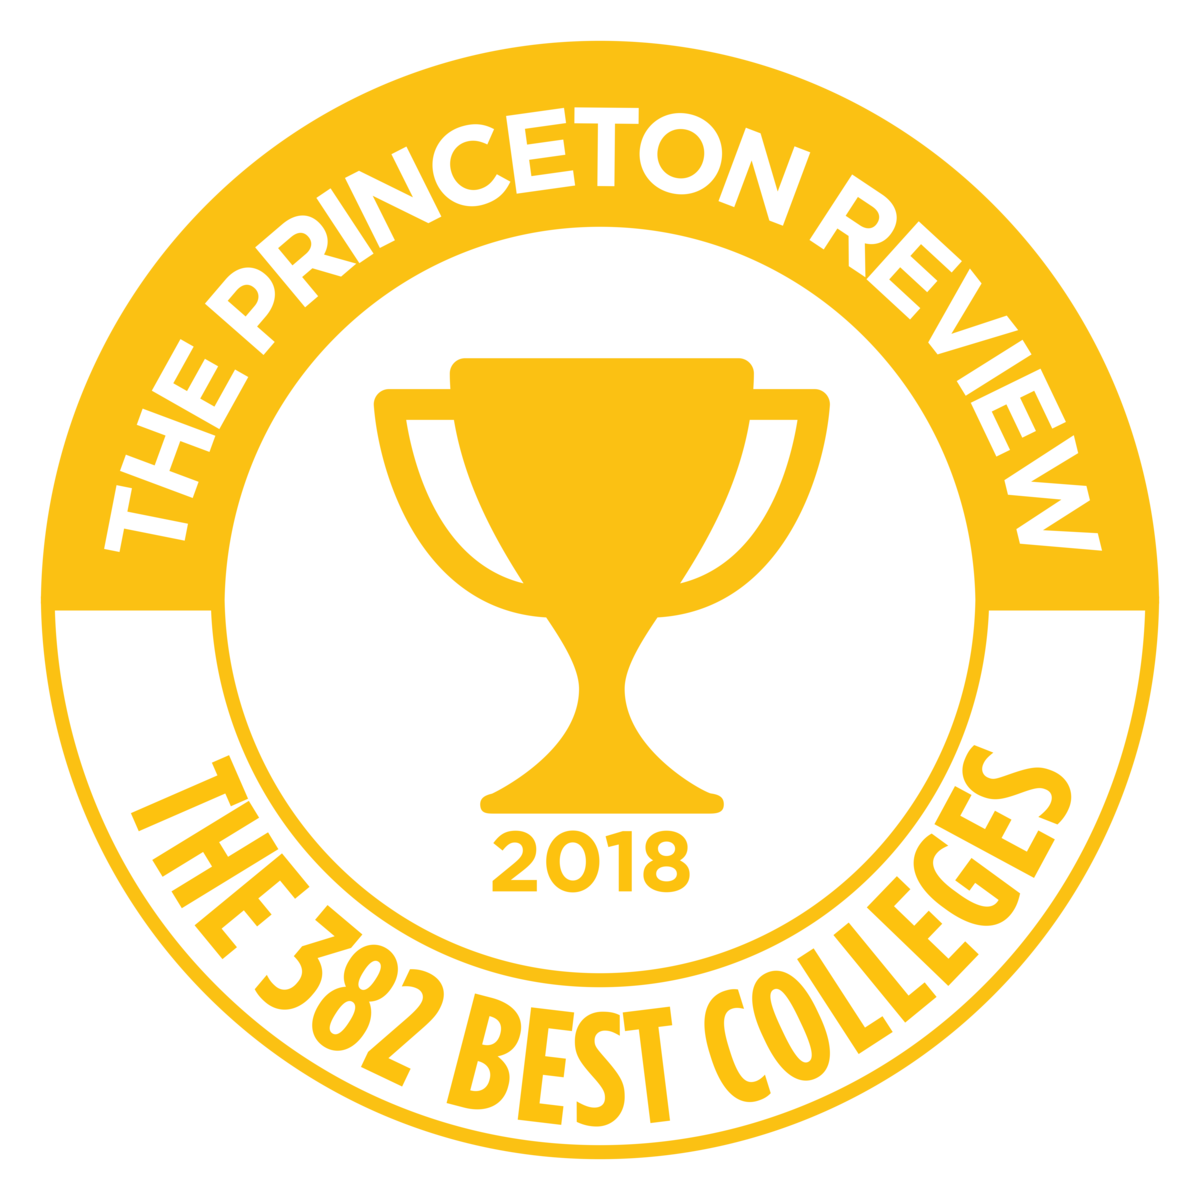 Princeton review badge 2018